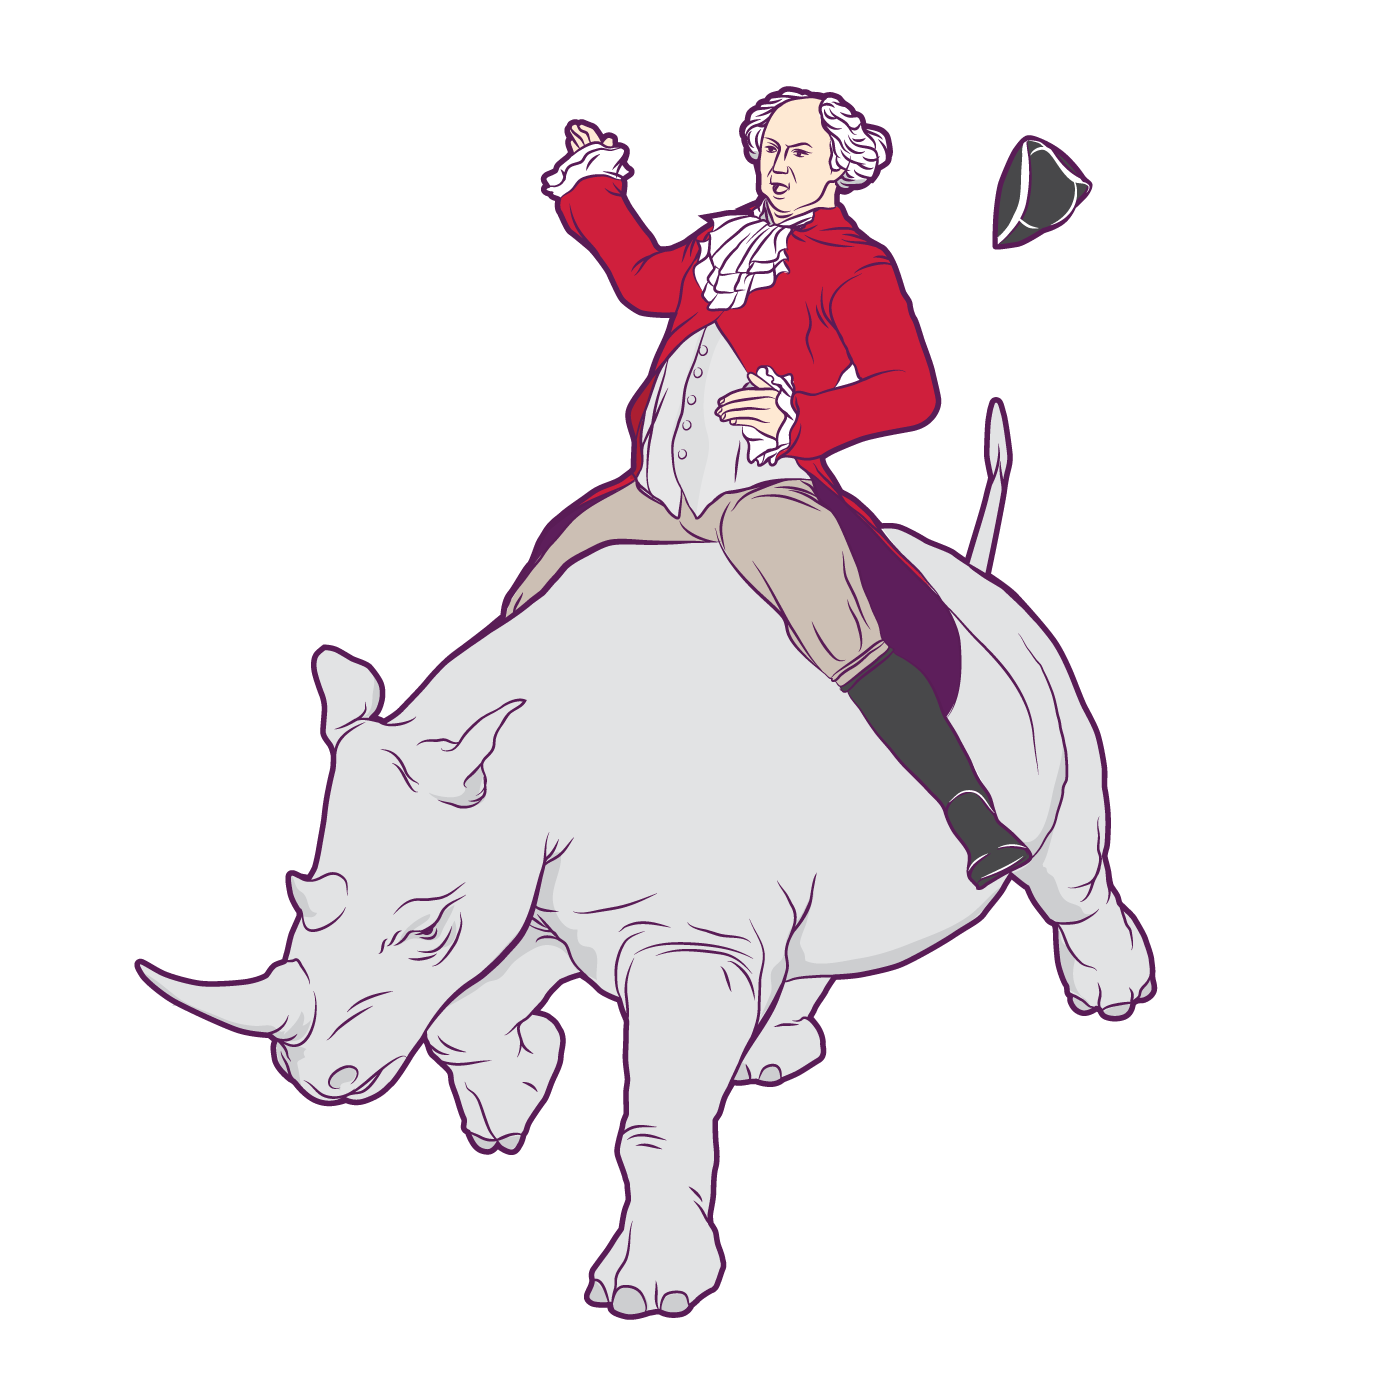 Virgin Mobile, Infographic by Max Hancock, John Adams riding a Rhino.